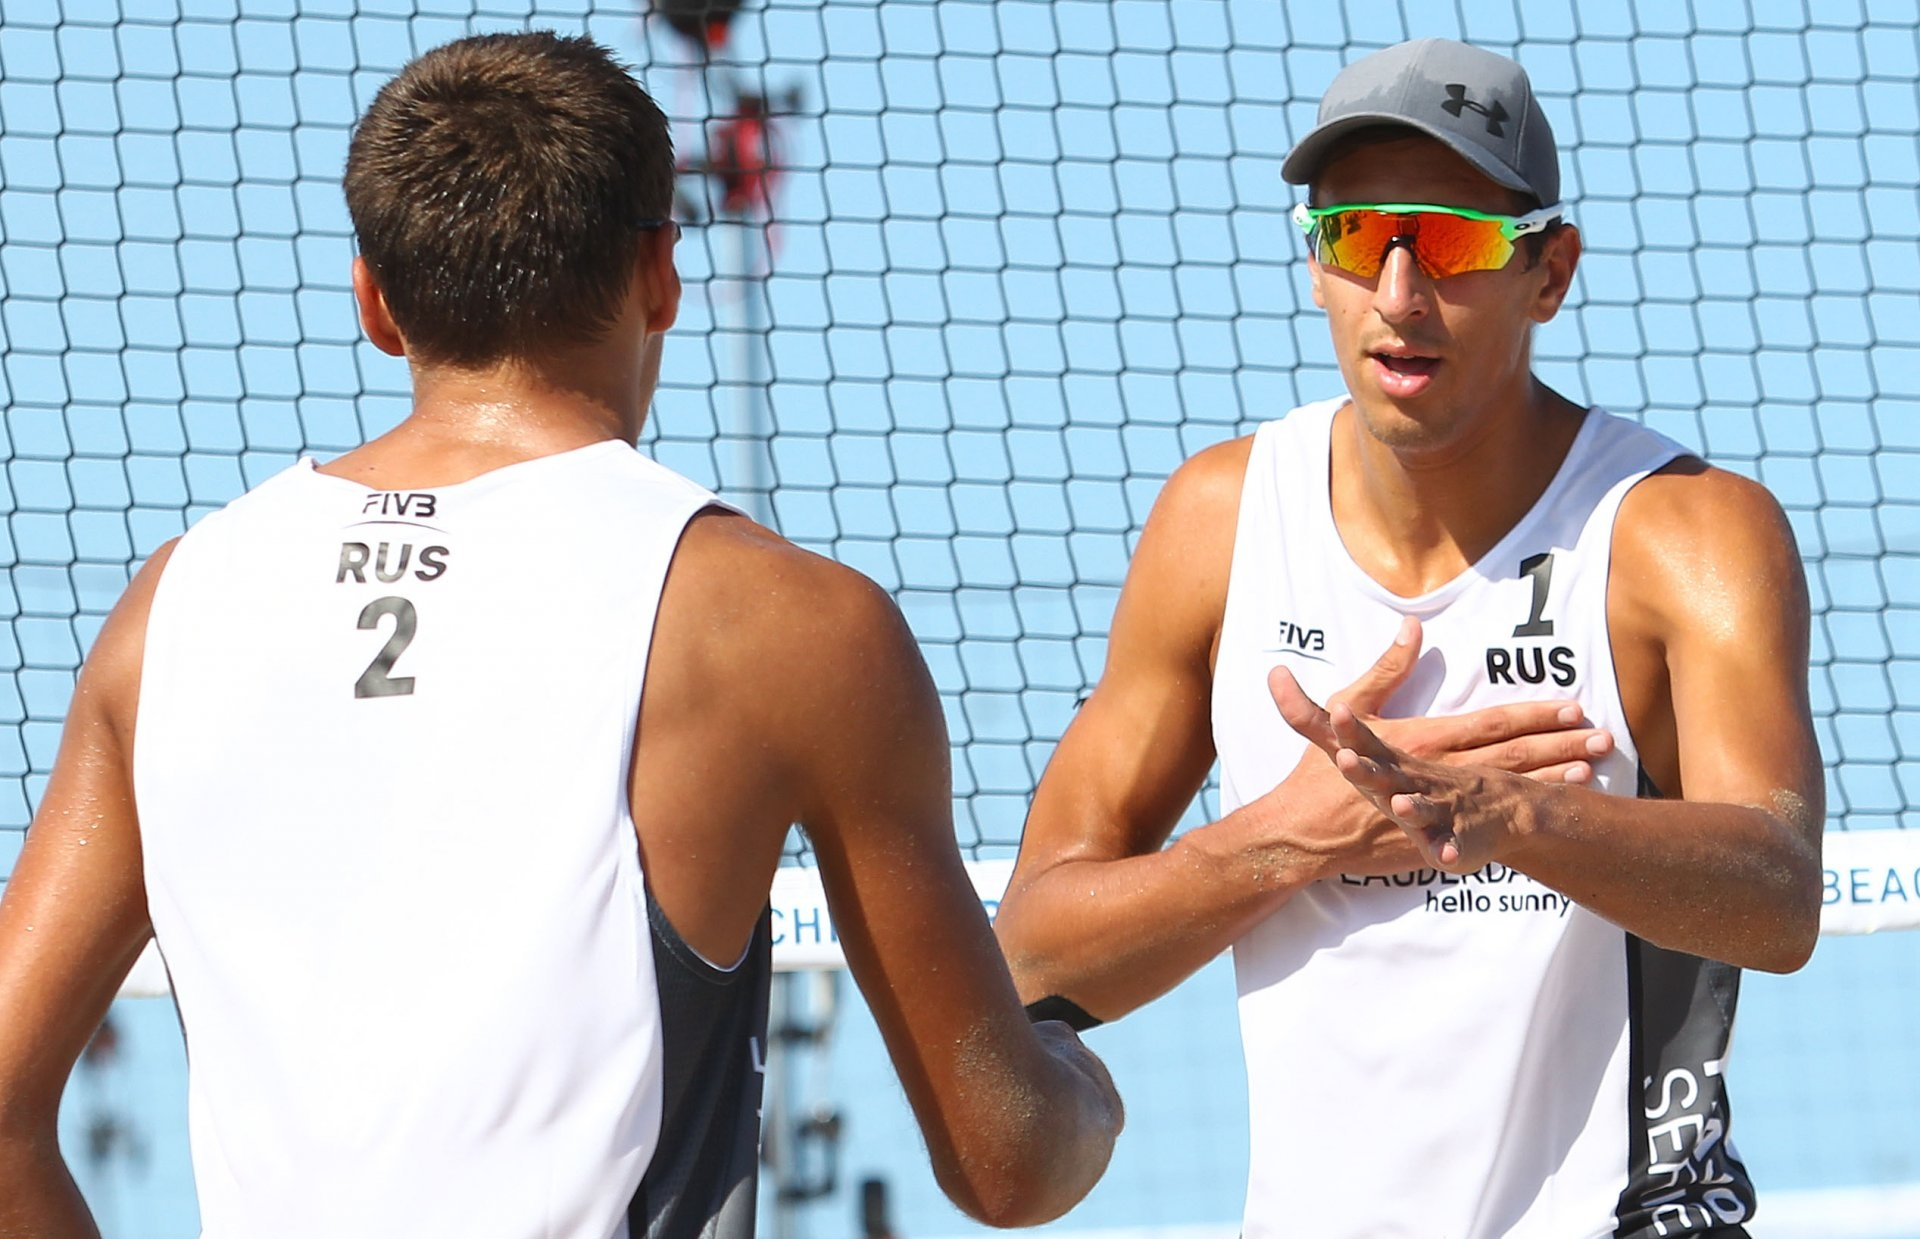 Velichko and Stoyanovskiy had a good start in the Fort Lauderdale Major (Photocredit: FIVB)